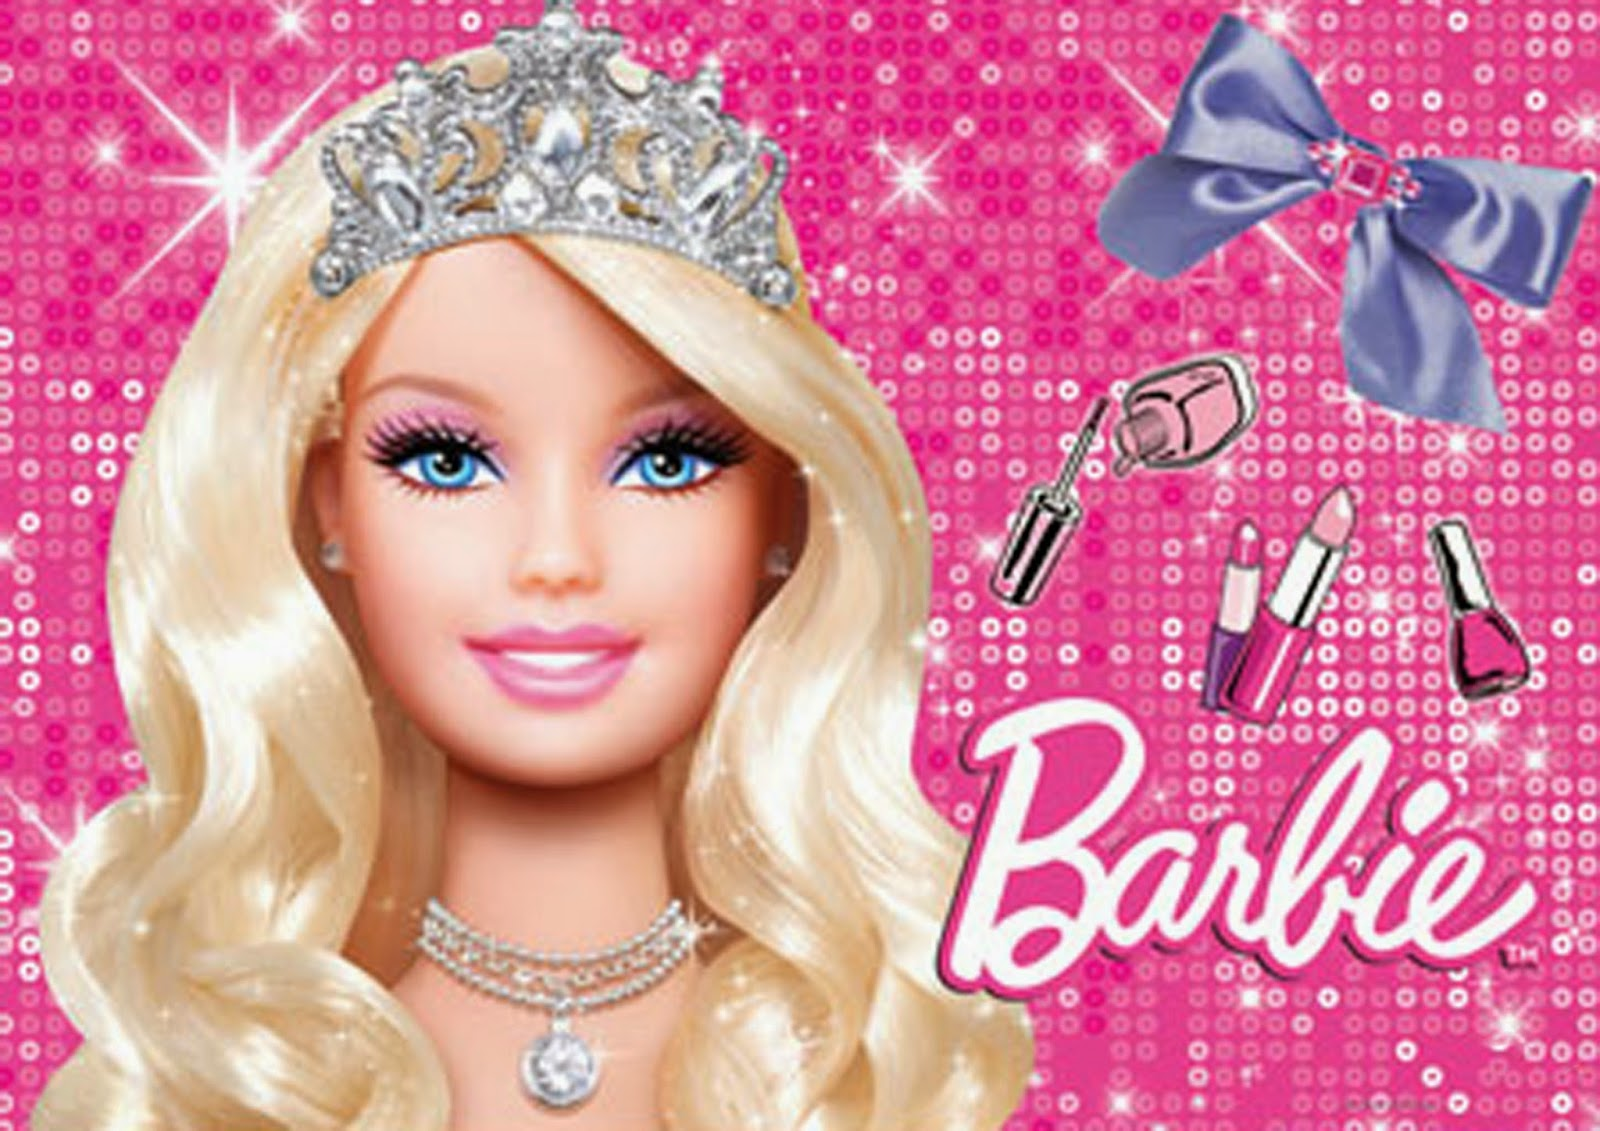 Barbie Wallpapers Desktop Wallpaper Hungama 1600x1131